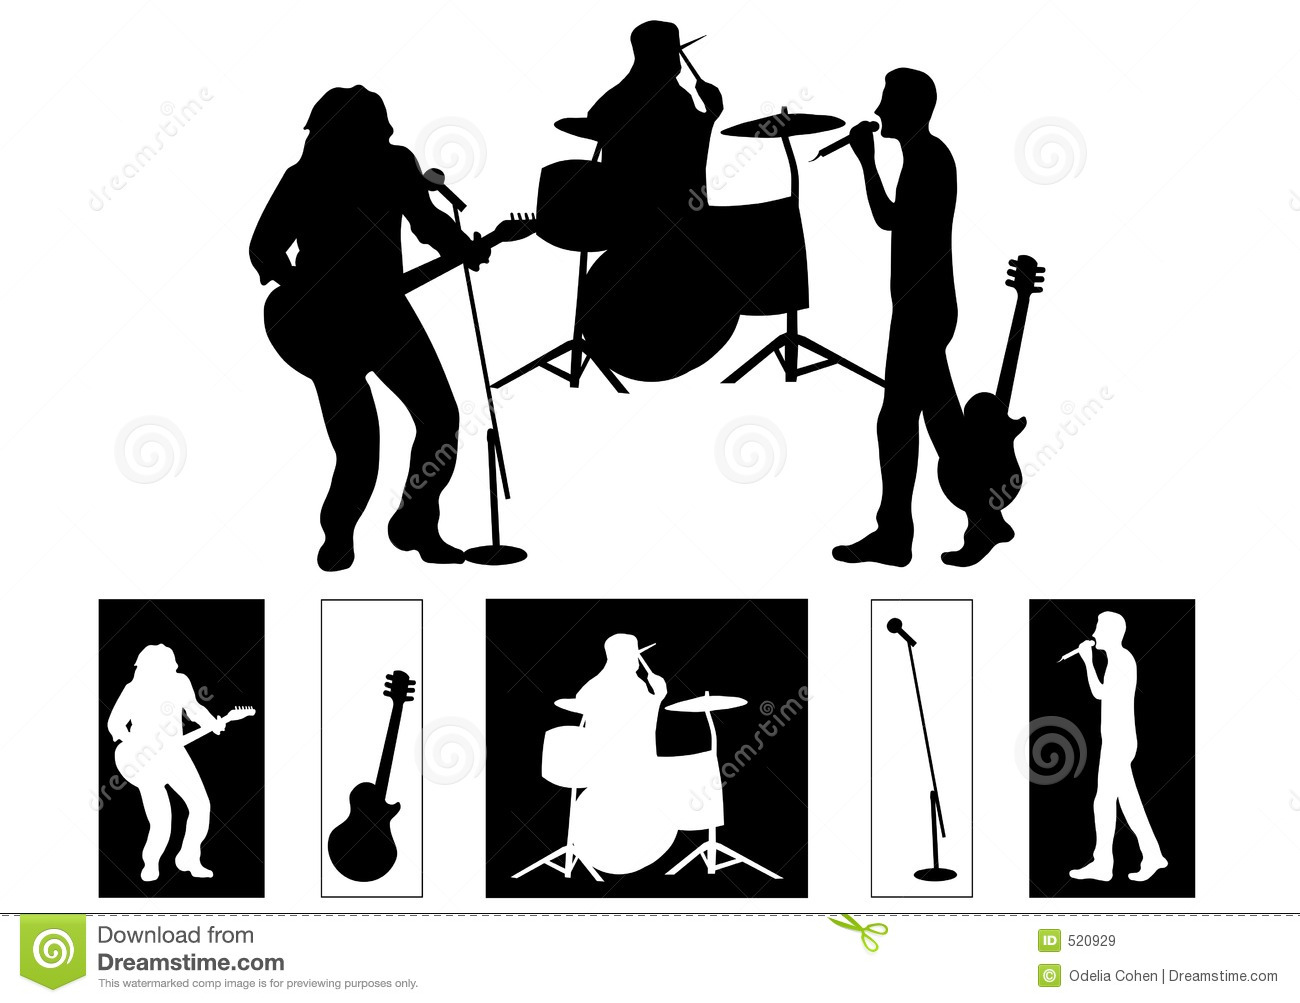 Band Royalty Free Stock Images - Image: 520929